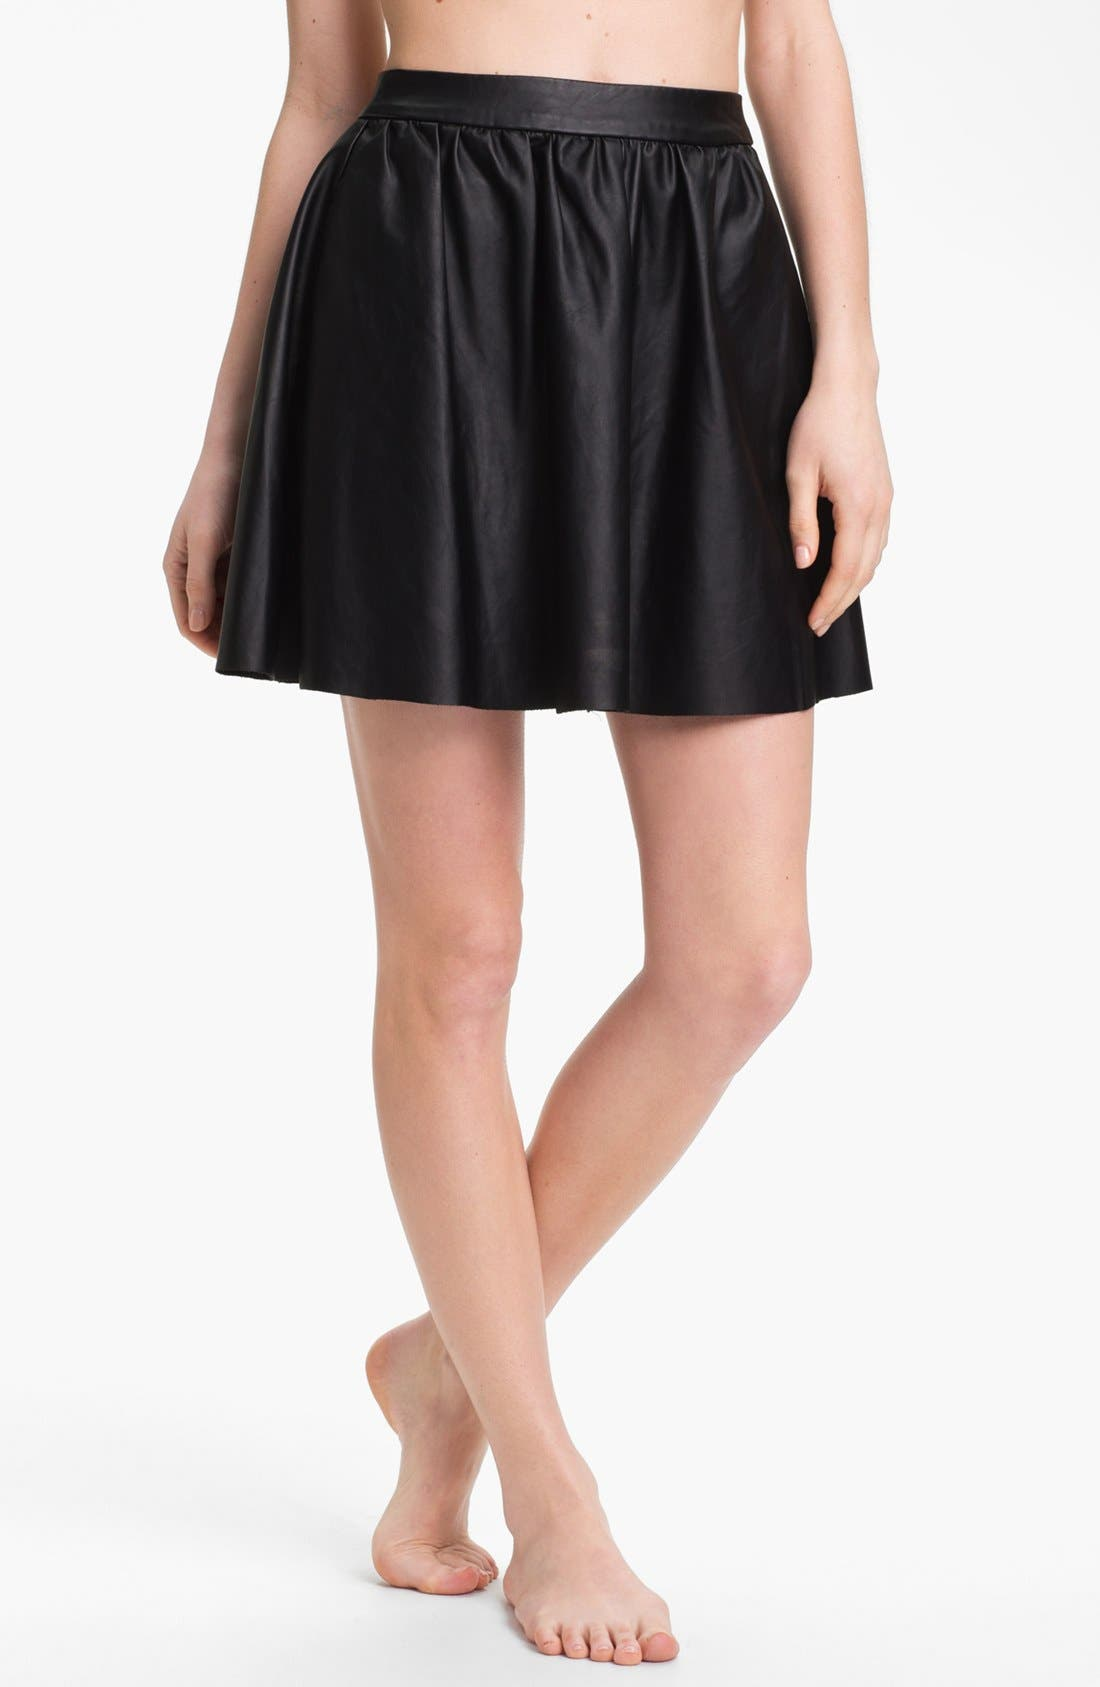 Alternate Image 1 Selected - Elan Faux Leather Cover-Up Skirt